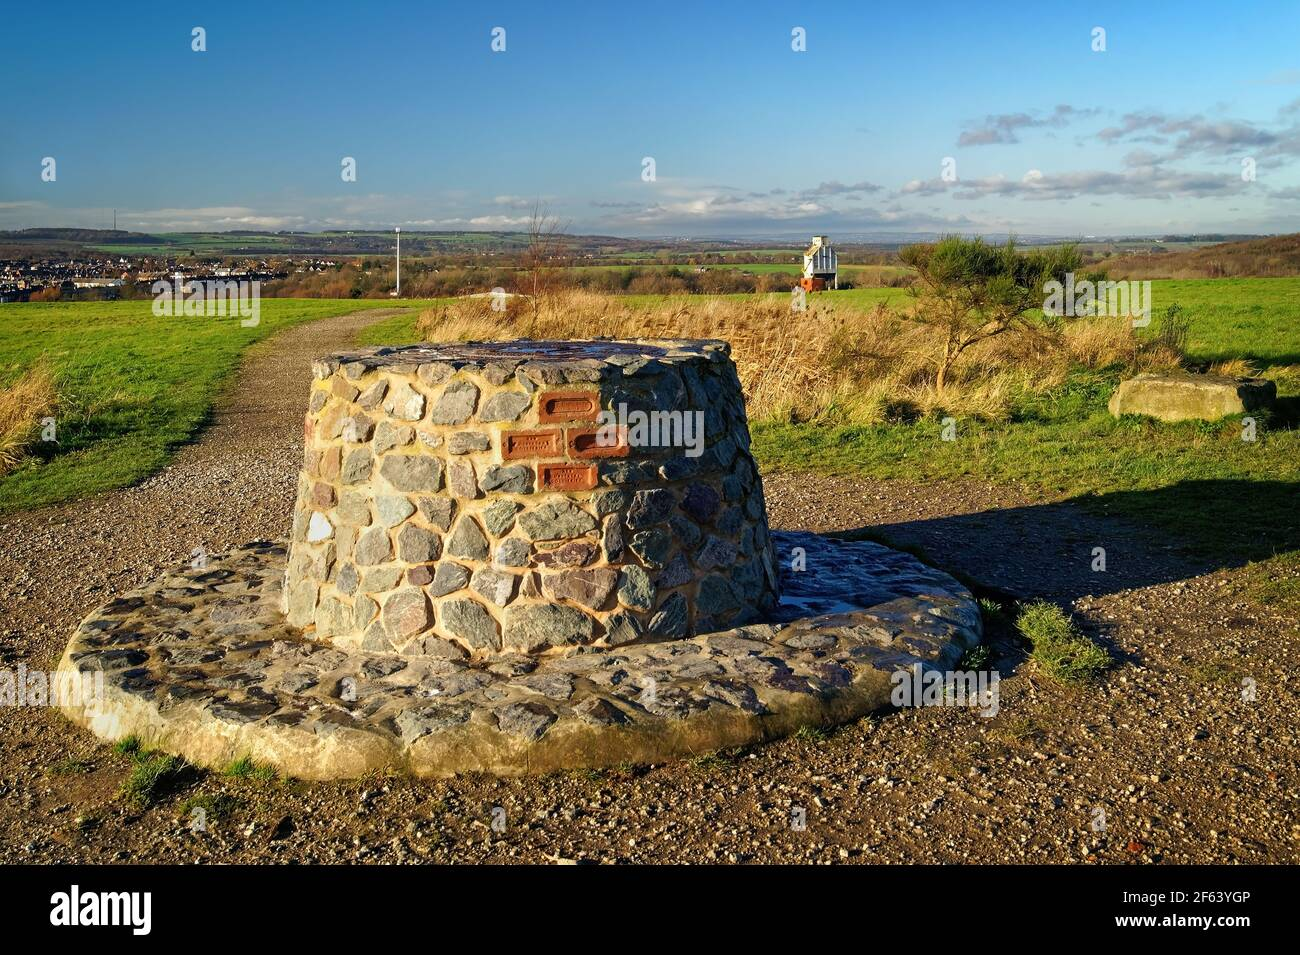 Royaume-Uni, Yorkshire du Sud, Barnsley, Royston, Rabbit ings Country Park, Stone Cairn Viewpoint Banque D'Images